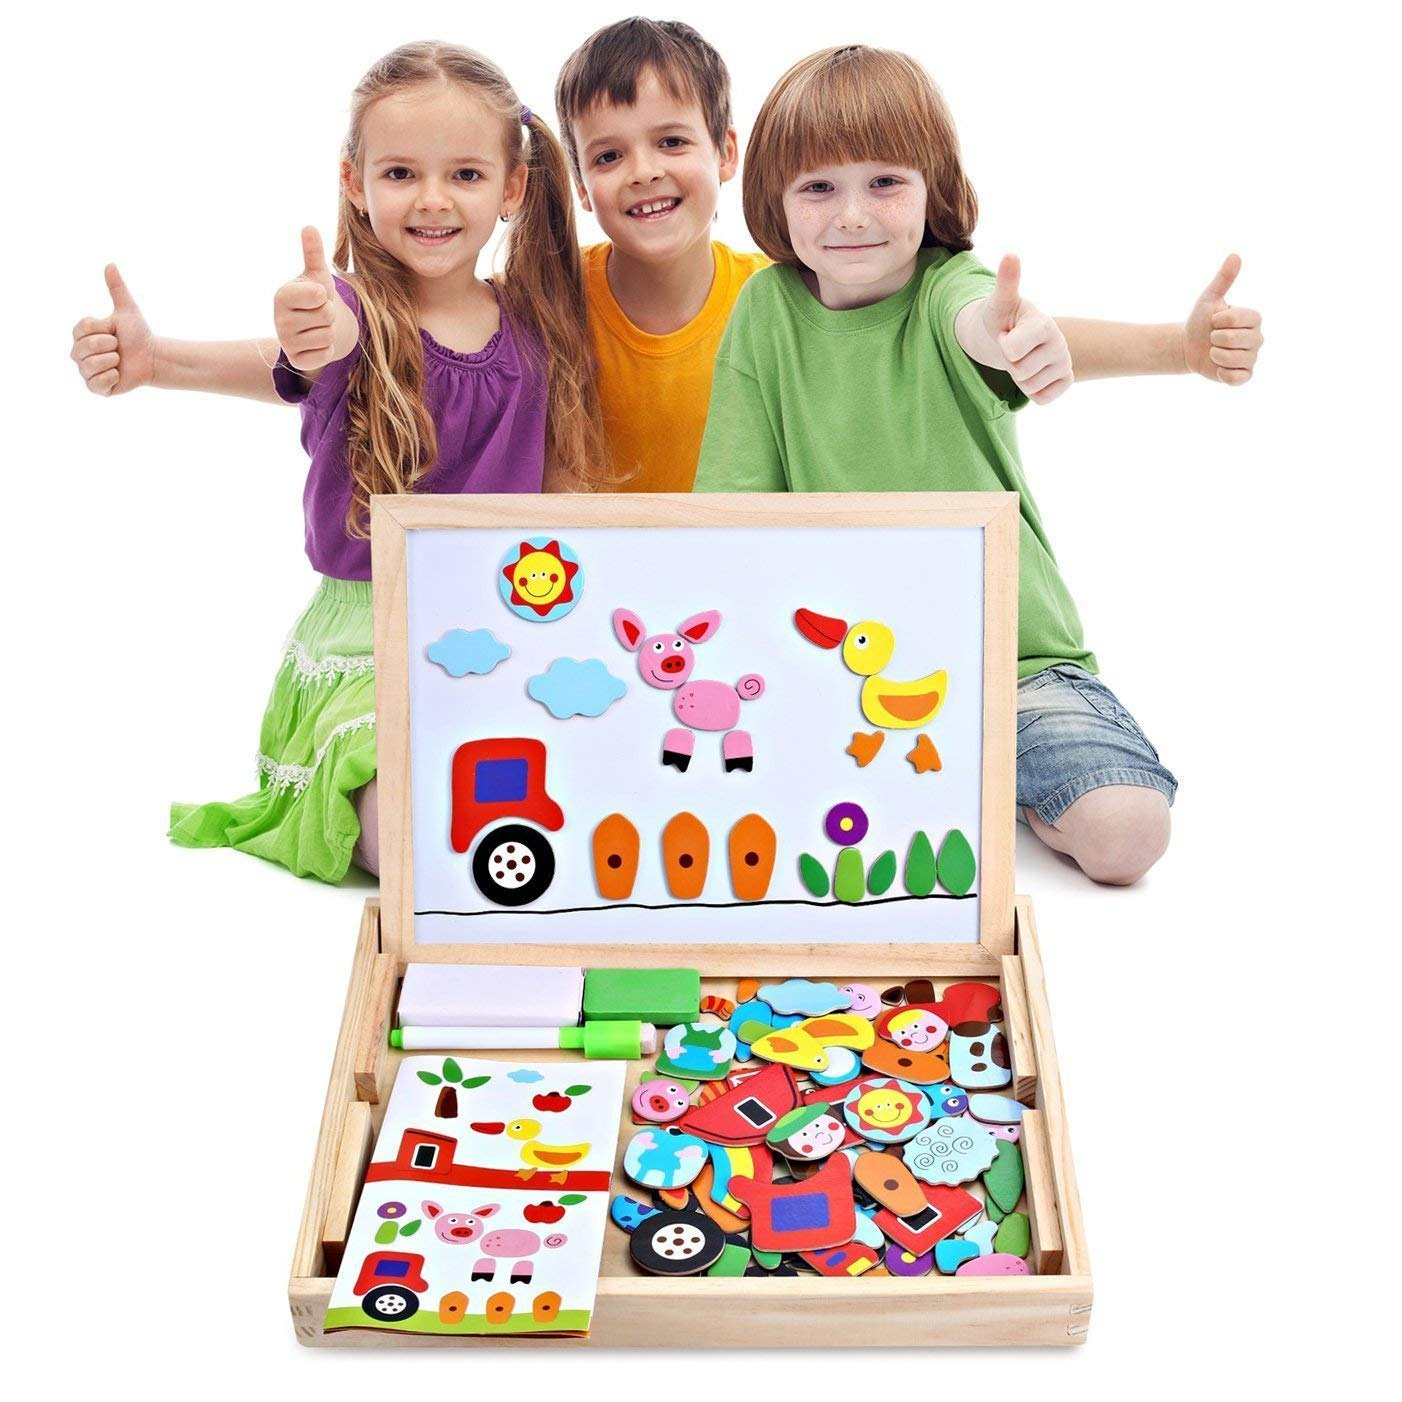 Digital Letters Wooden Whiteboard Number Magnetic Drawing Board 3-6 Years Old Children Puzzle Early Education Learn Toys Home